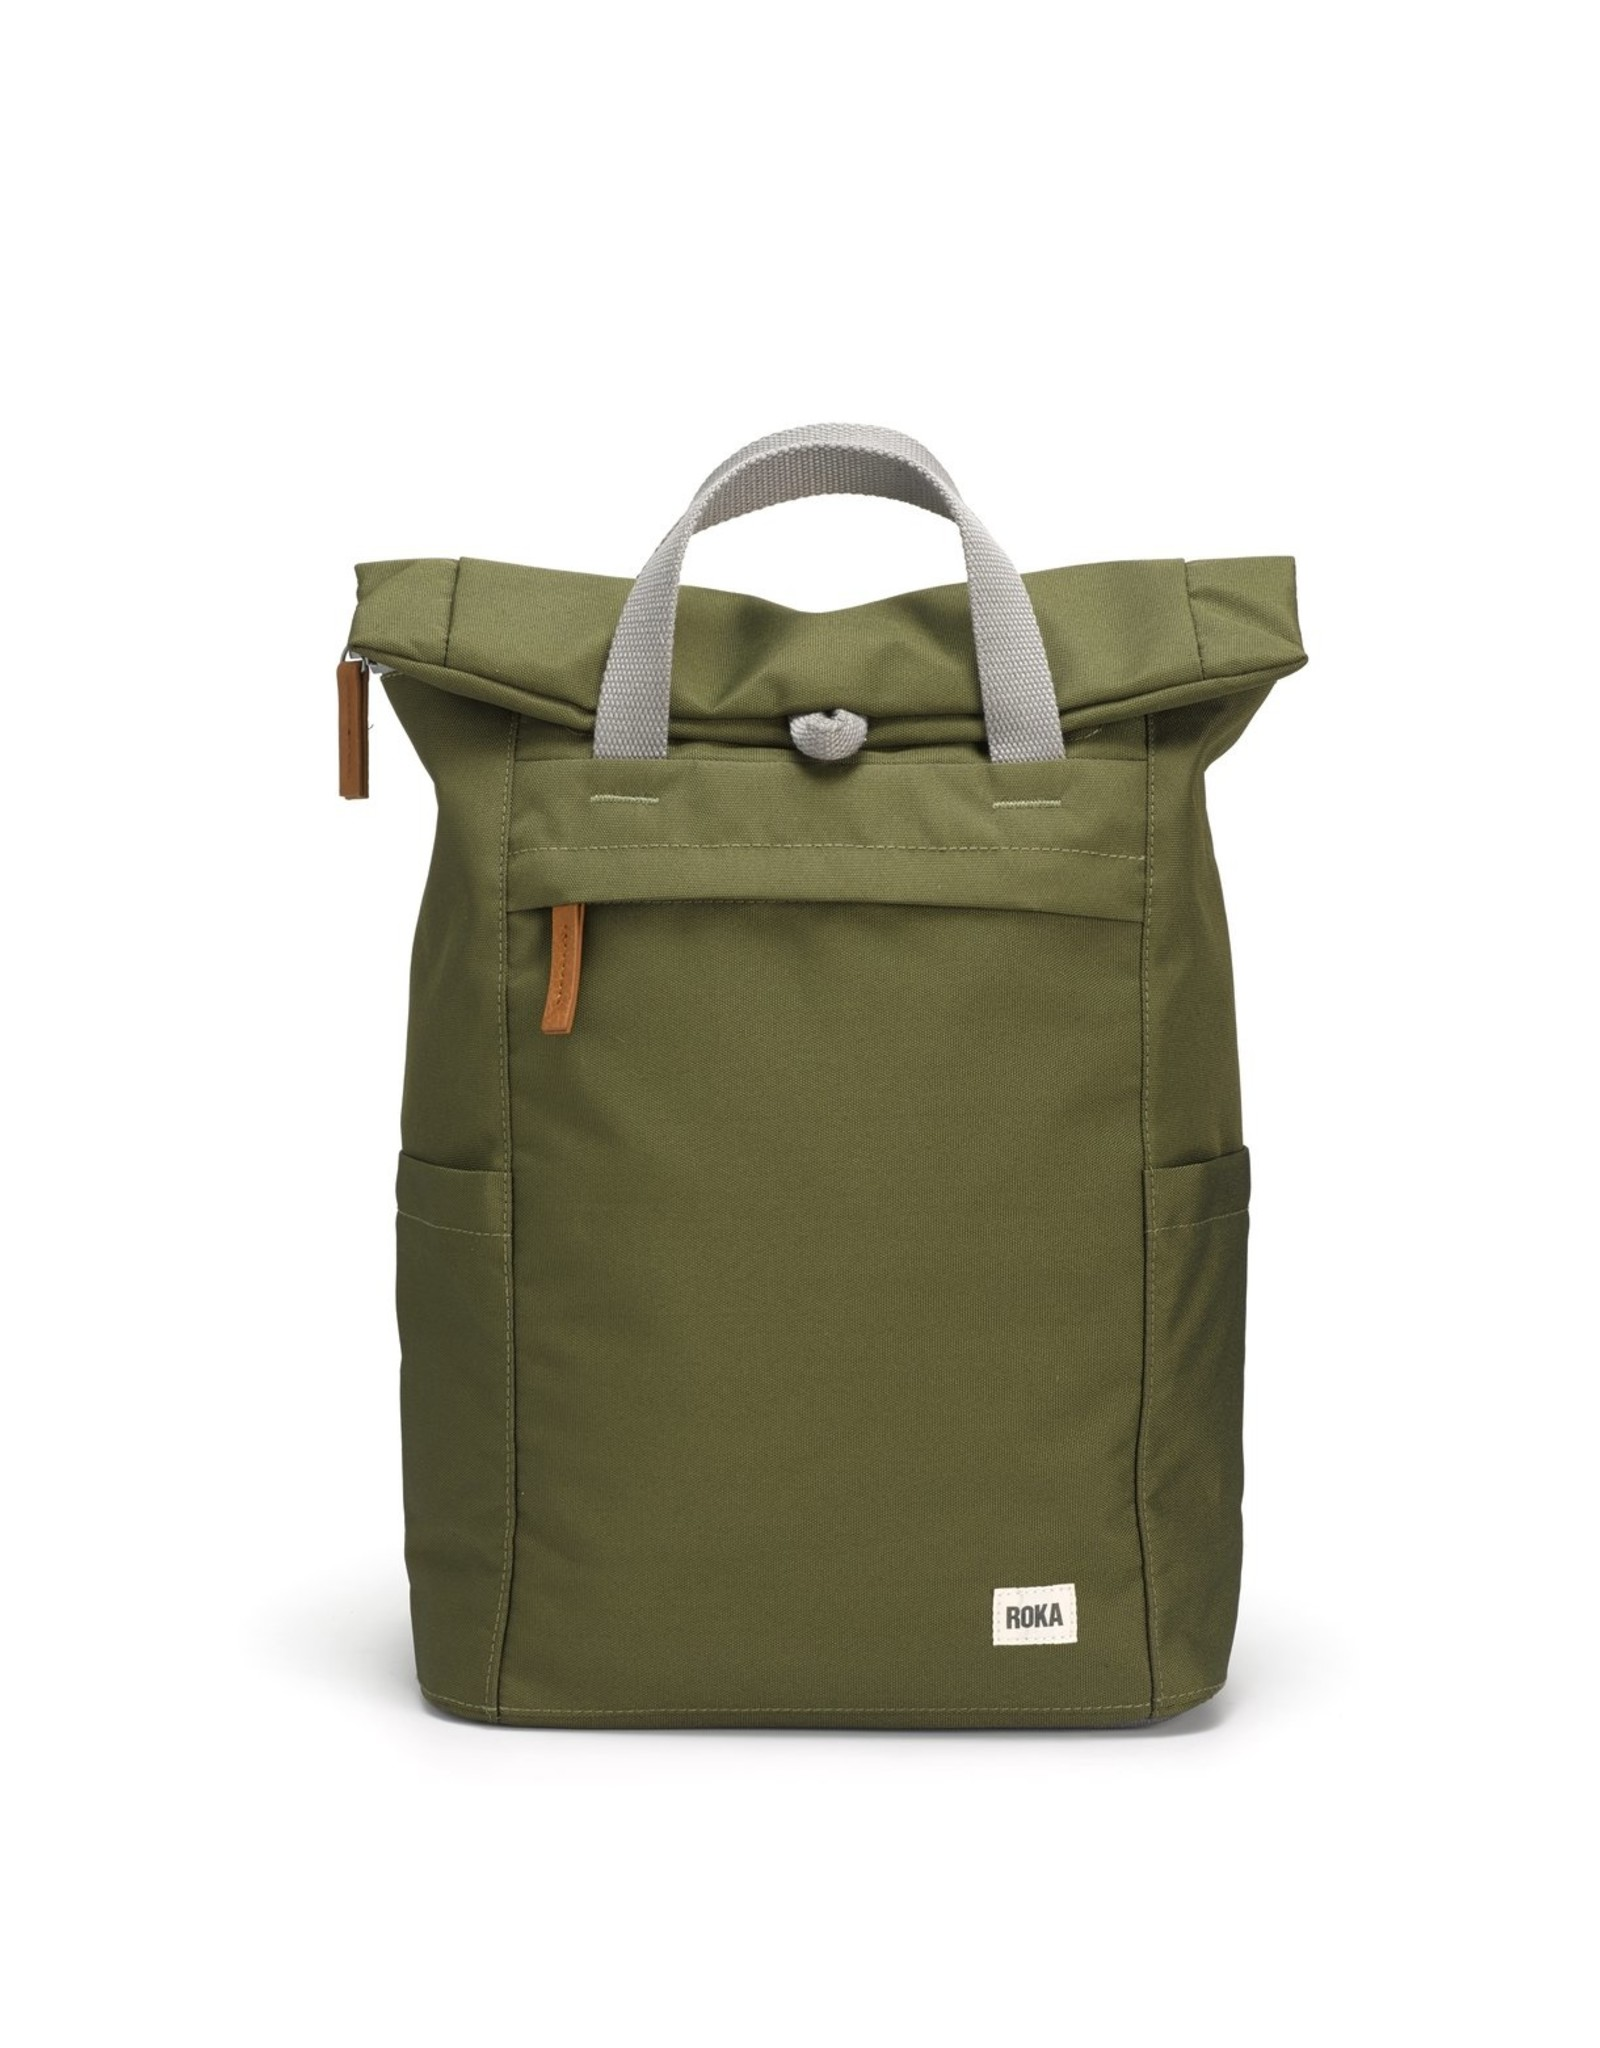 ROKA London Finchley A medium Sustainale Moss  12-15 recycled bottles